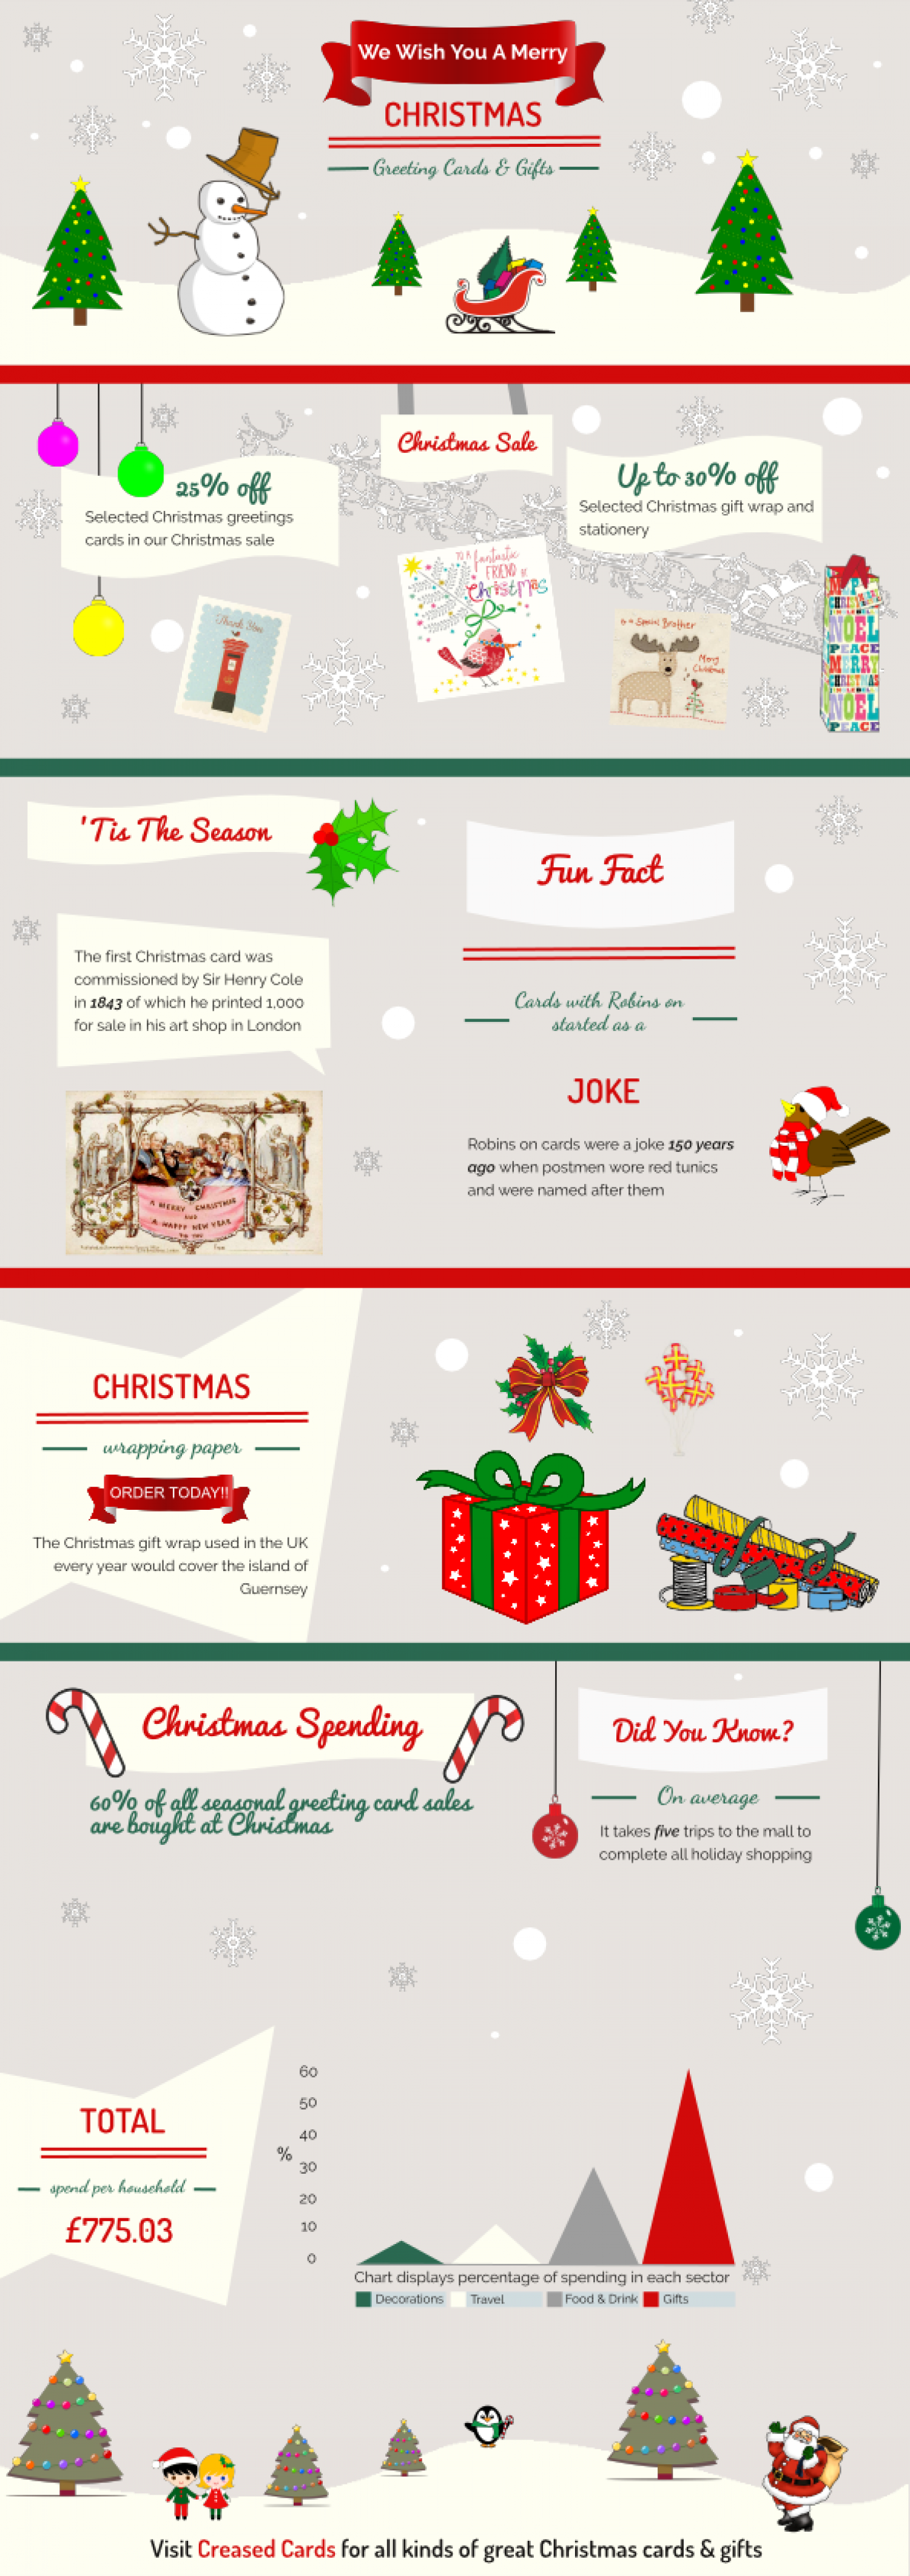 Funny christmas cards gifts a seasonal infographic visual funny christmas cards gifts a seasonal infographic infographic m4hsunfo